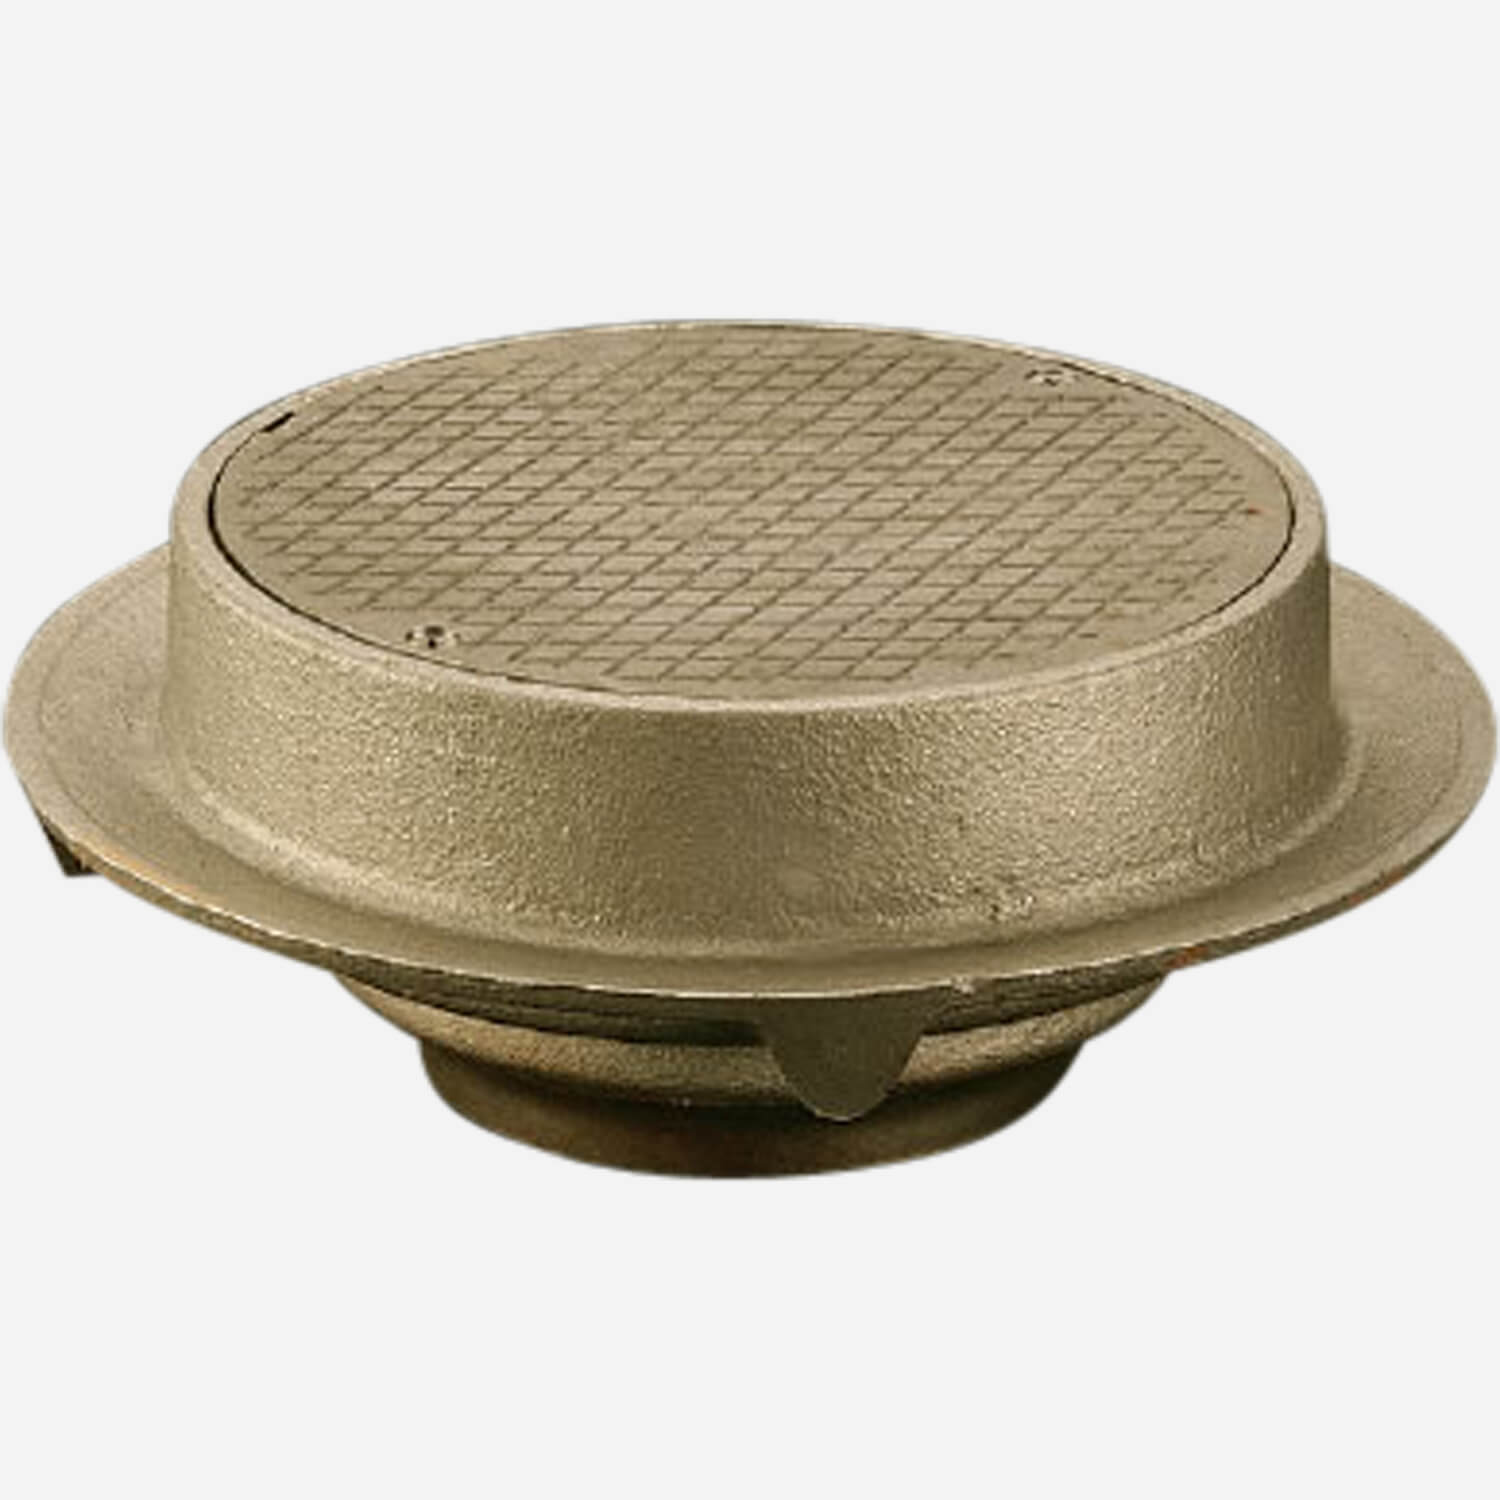 Round Solid Scoriated Cover and Closure Plug for Floor Drains